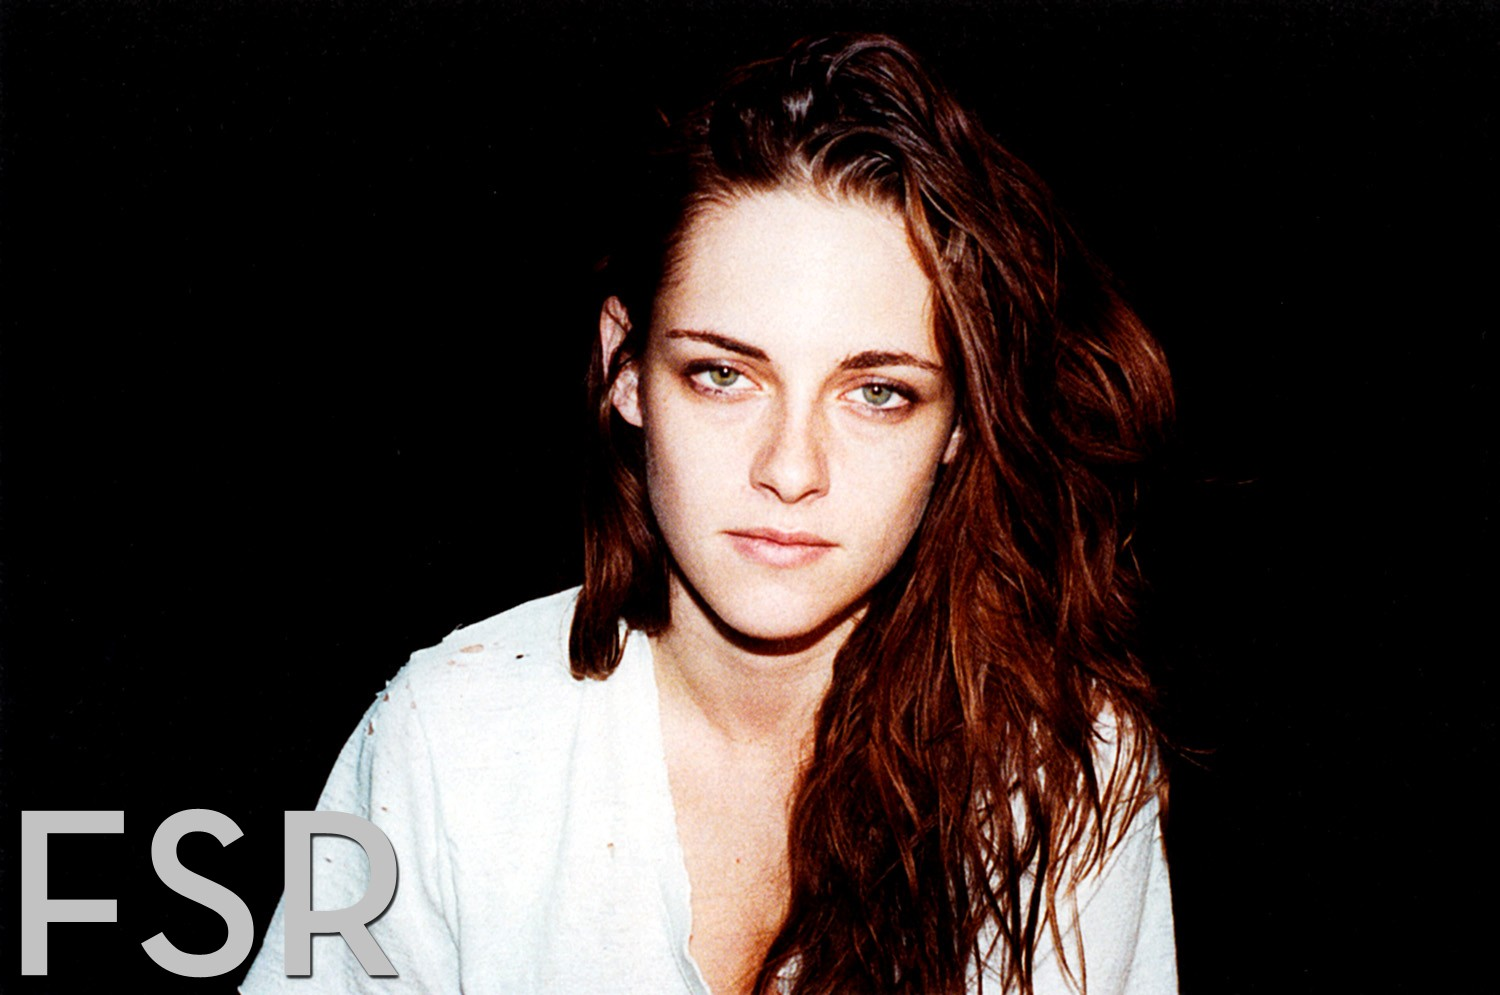 ksf_fashion_scans_remastered-kristen_stewart-w_usa-february_2013-scanned_by_vampirehorde-hq-2